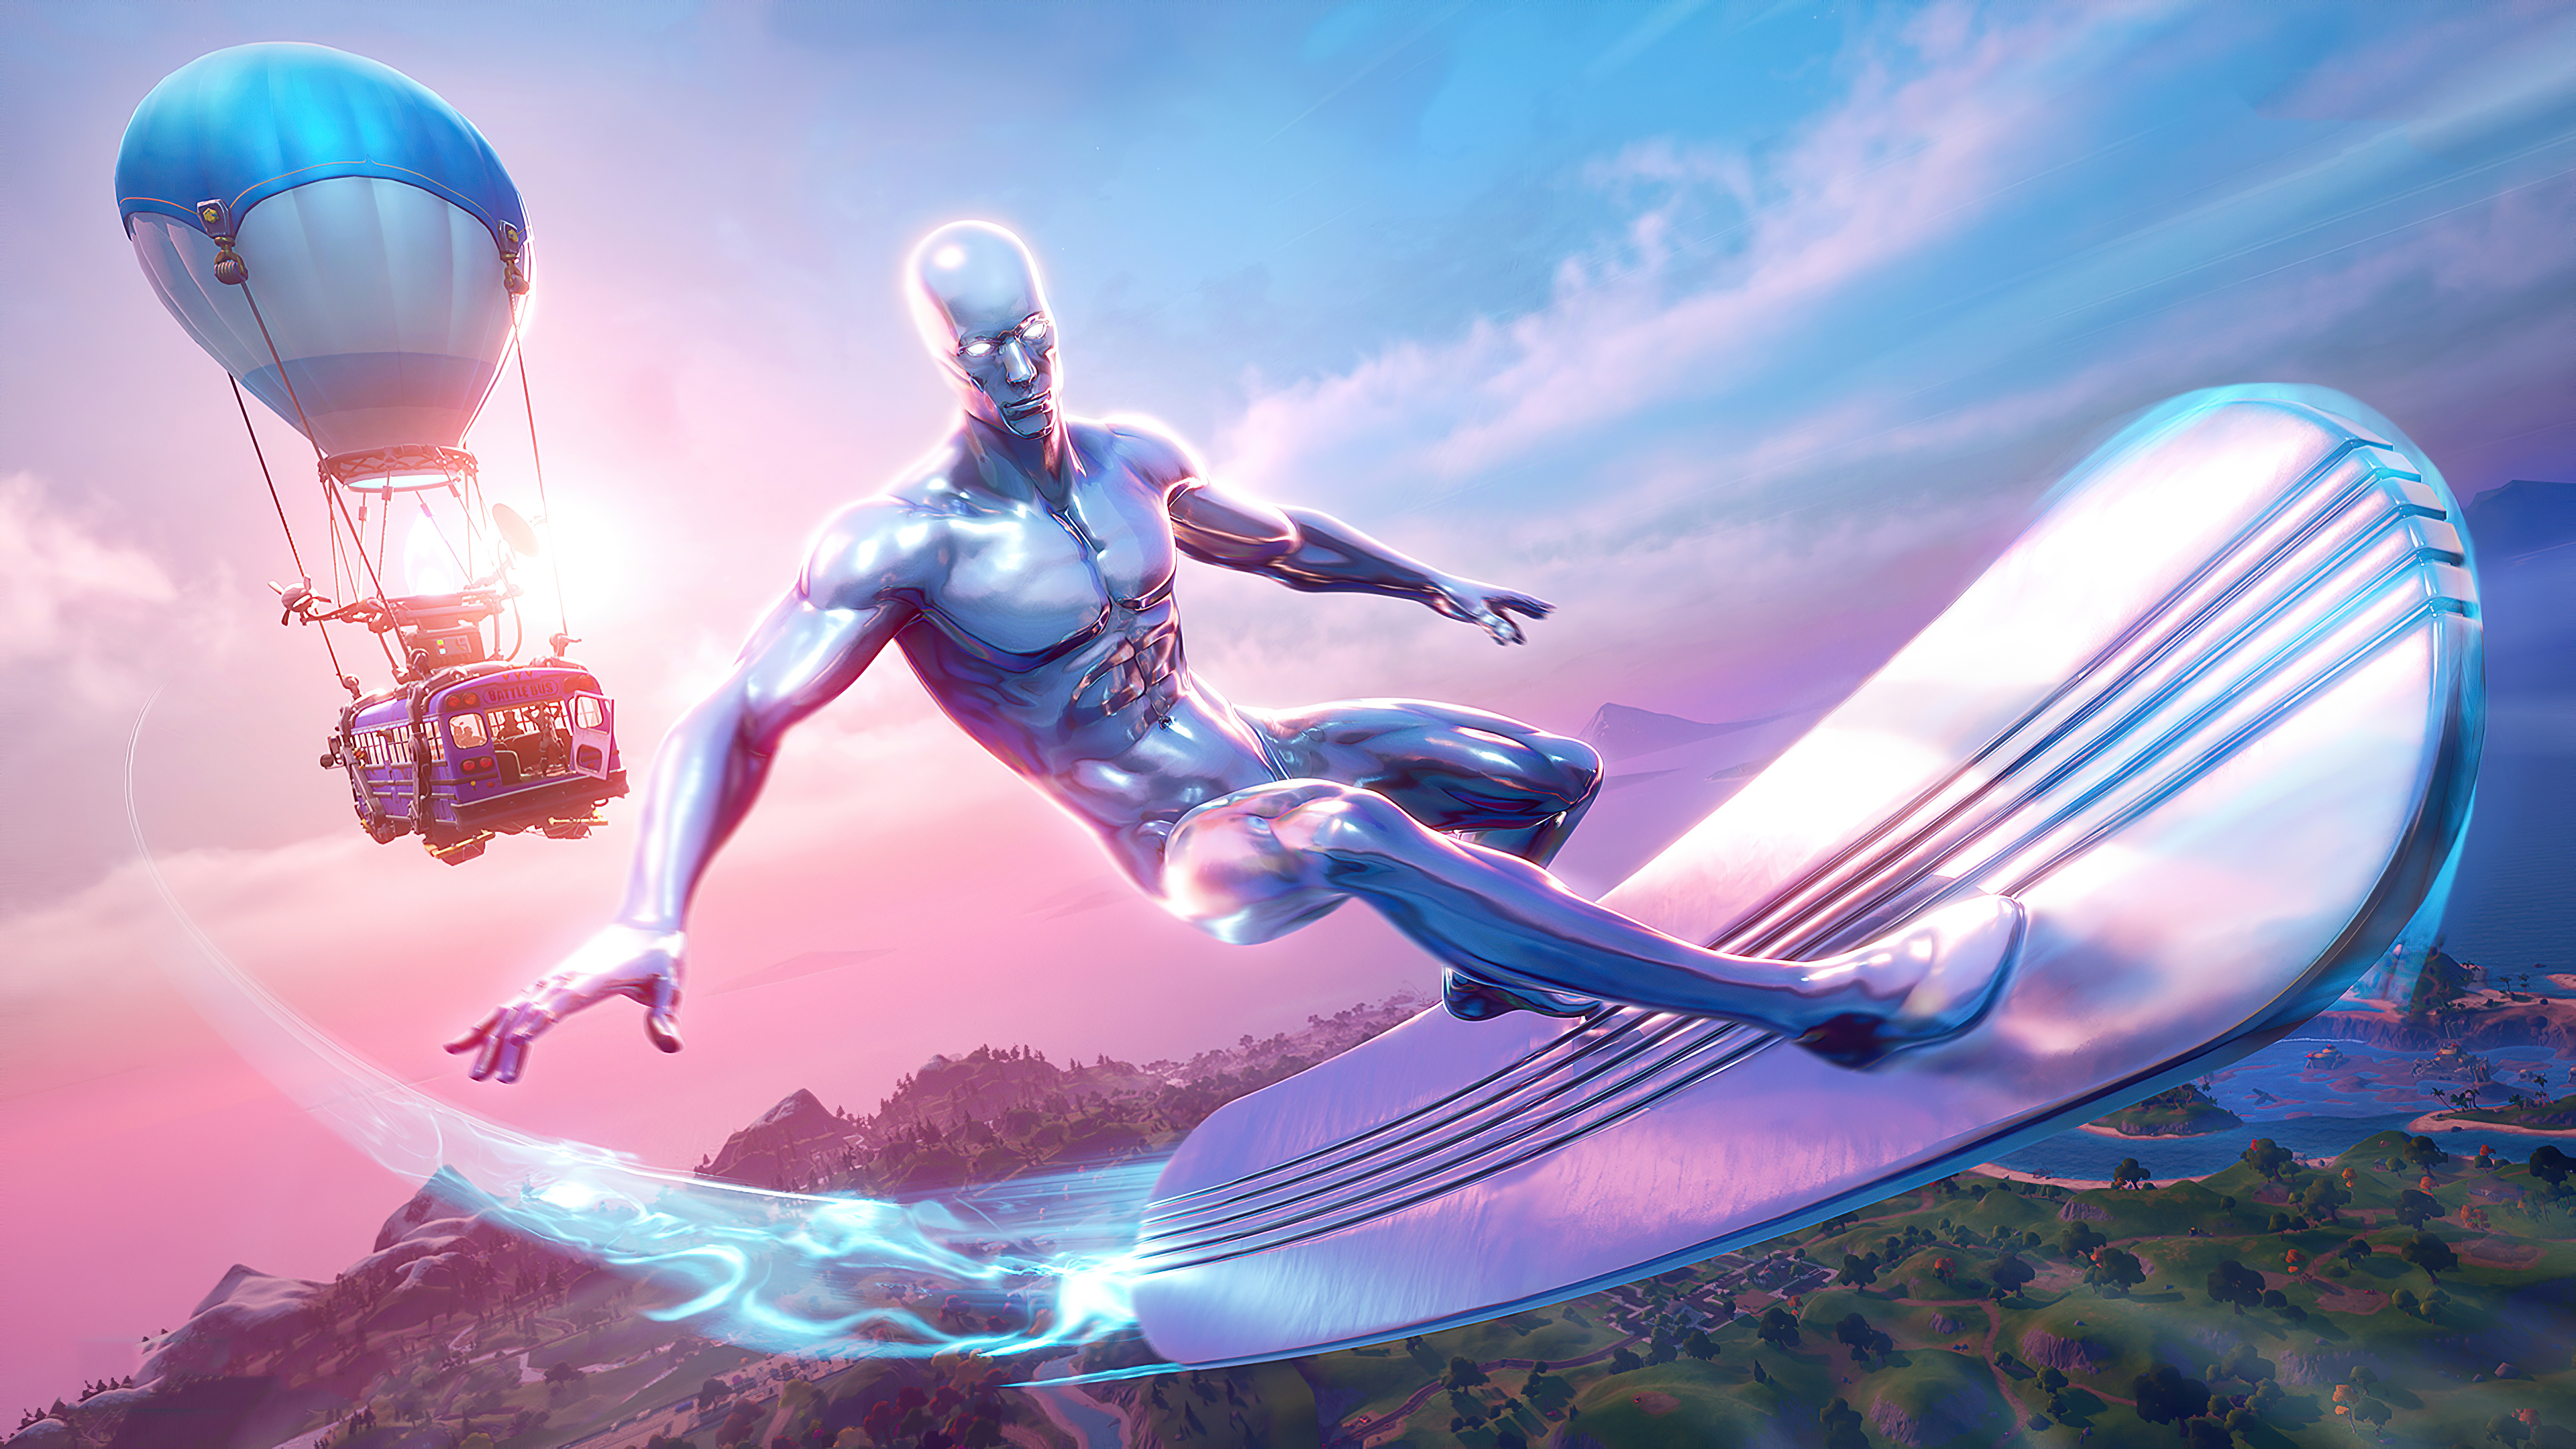 1336x768 Fortnite Season 4 Silver Surfer Laptop Hd Hd 4k Wallpapers Images Backgrounds Photos And Pictures